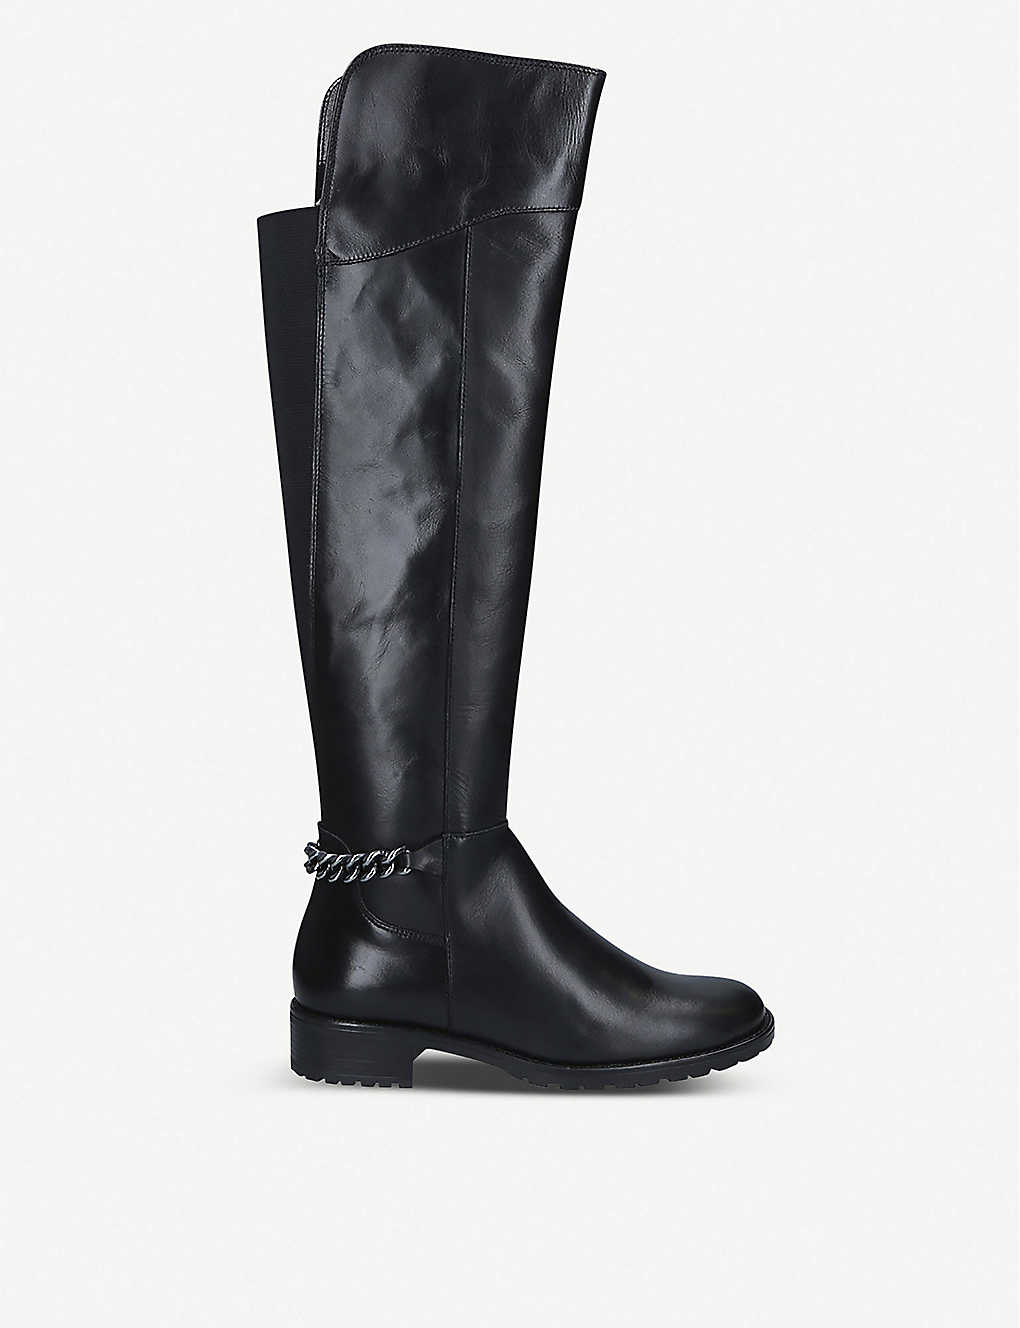 KURT GEIGER LONDON: Valerie over-the-knee leather boots